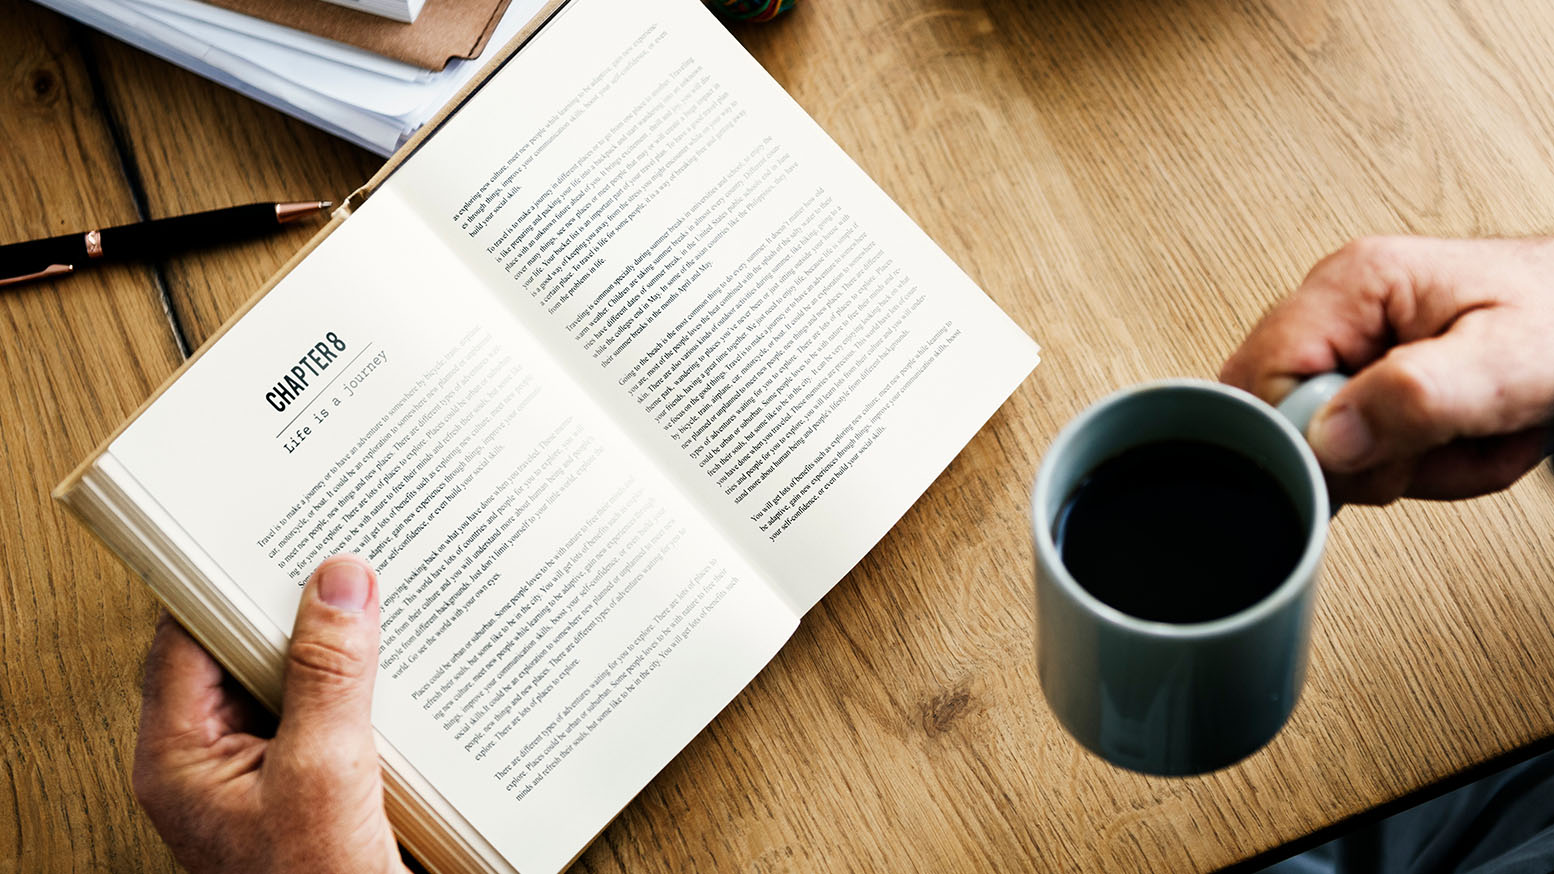 Person reading a book while drinking coffee